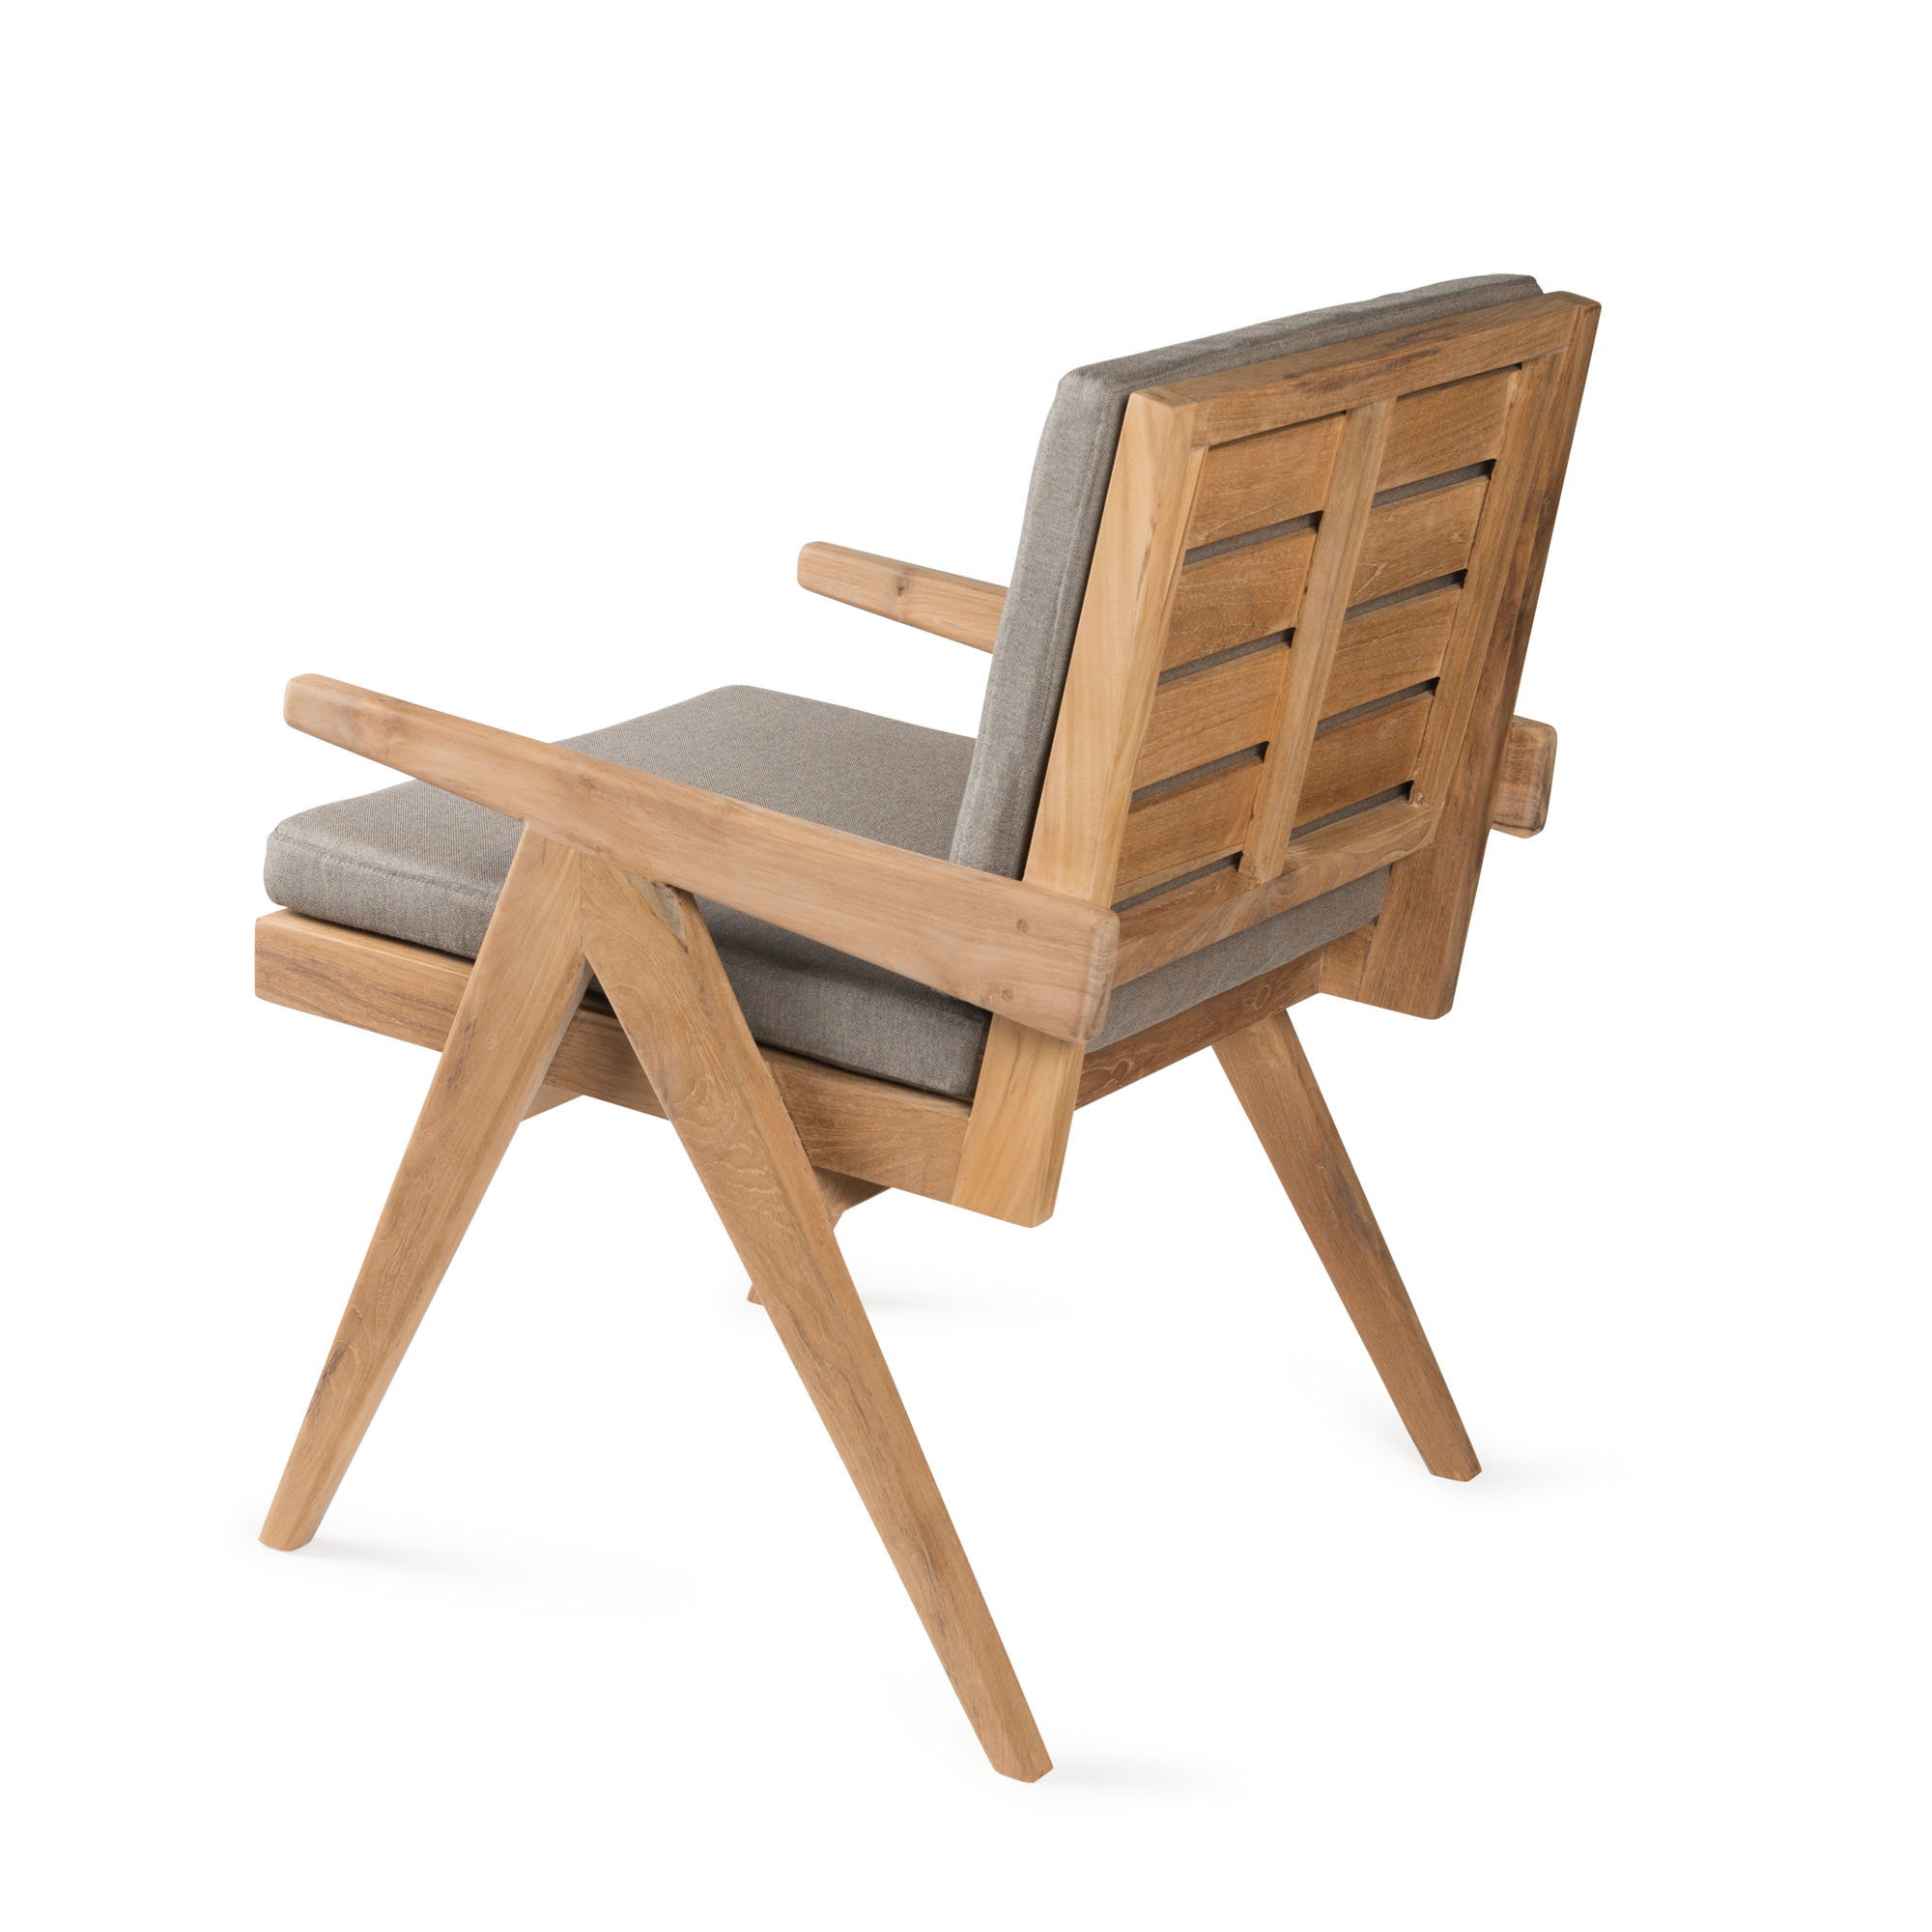 Dining Easy Lounge  Chair - Teak Outdoor with Cushion-3